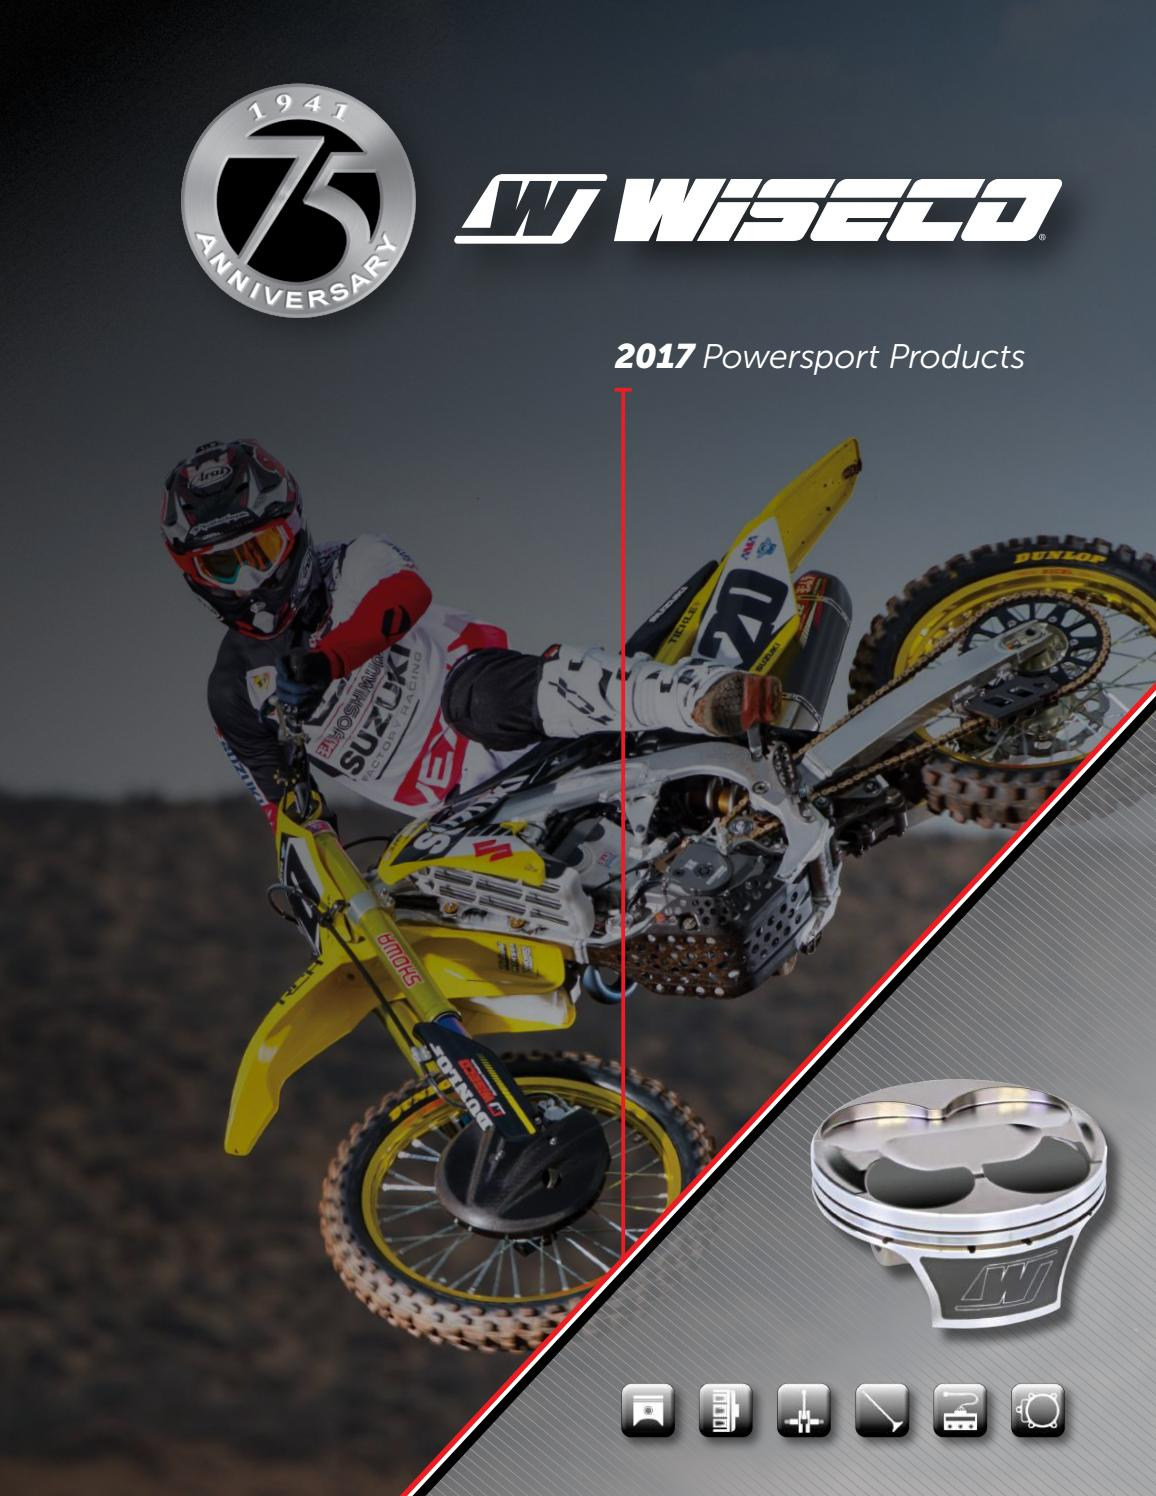 Wiseco PK1035 88.00 mm 10.0:1 Compression ATV Piston Kit with Top-End Gasket Kit